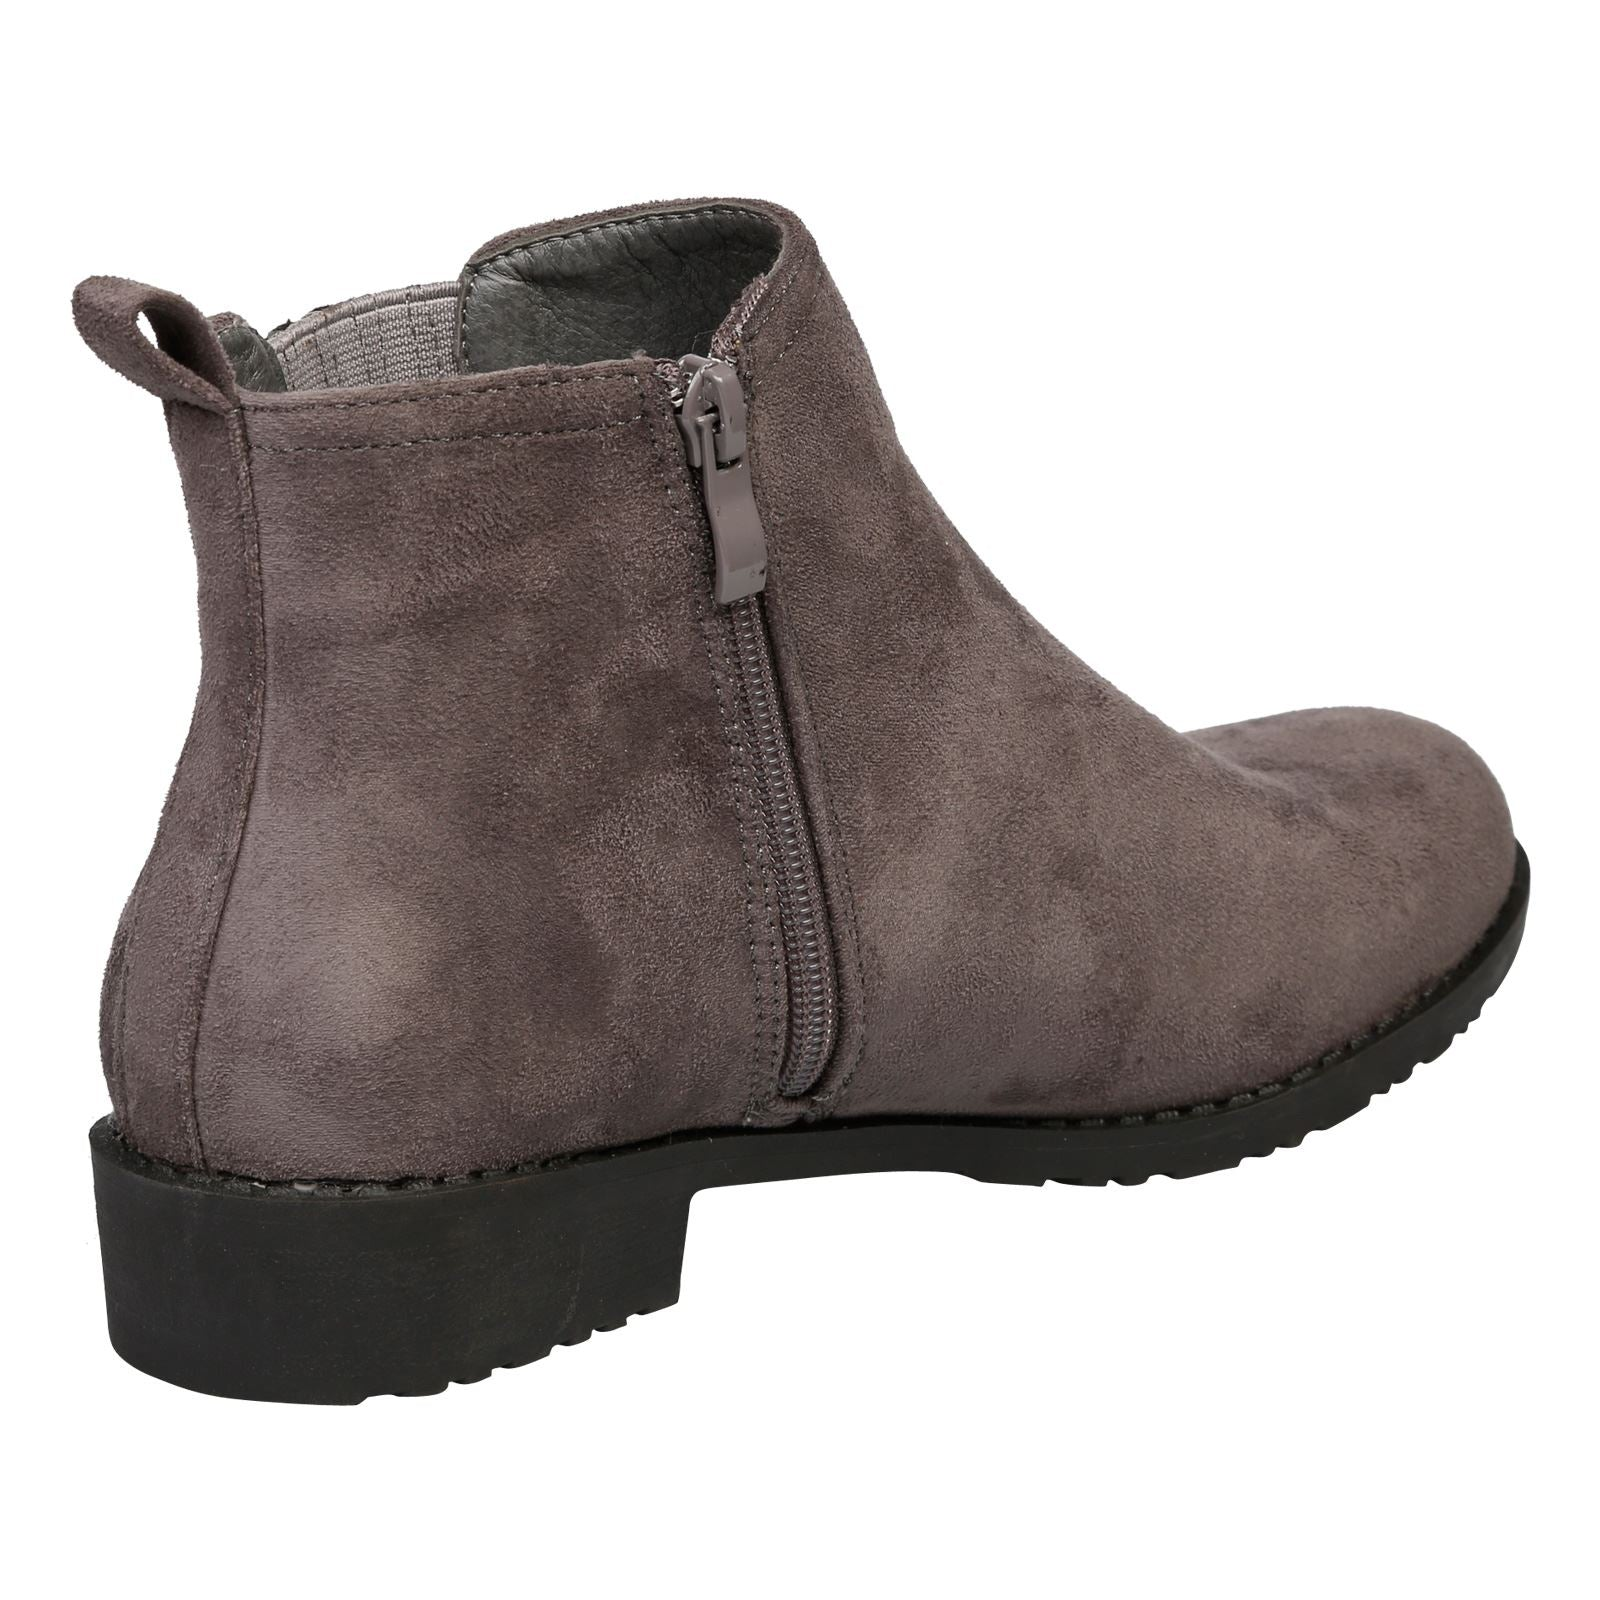 Cara Low Heel Ankle Boots in Grey Faux Suede - Feet First Fashion